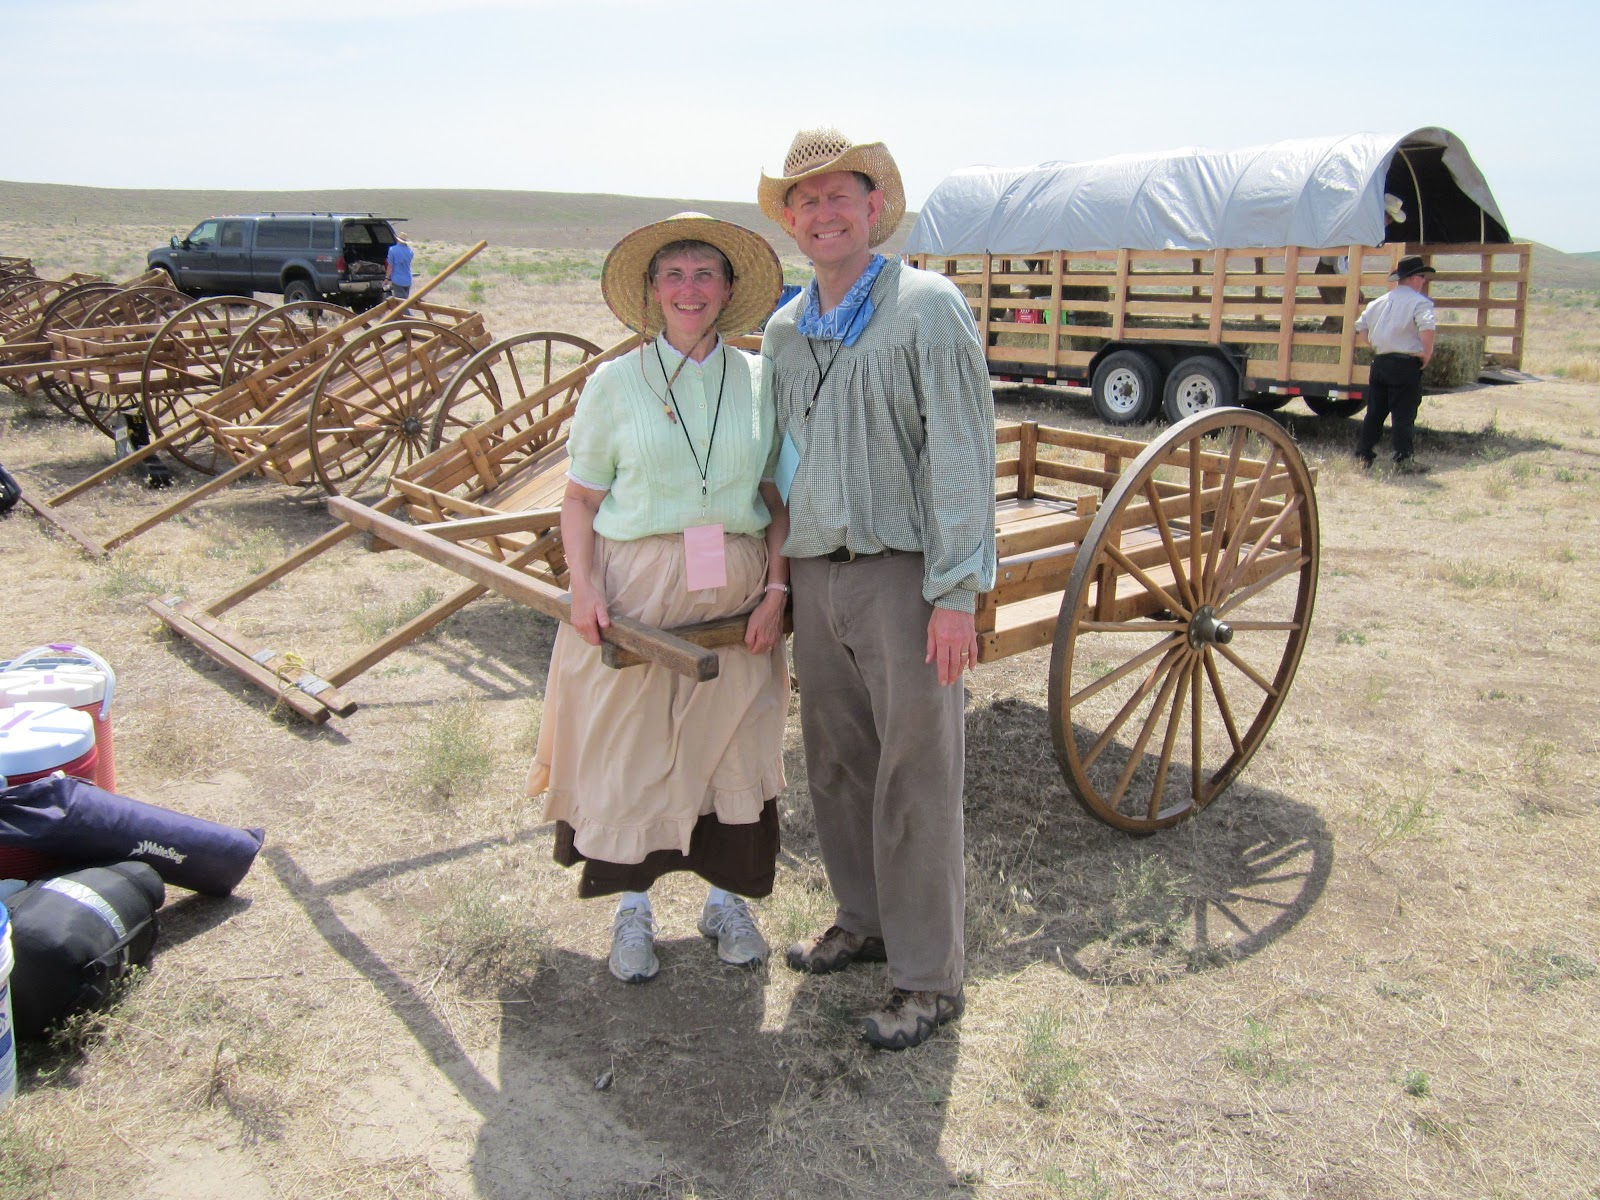 at the start of the week our pioneer clothes are still fresh and clean we are standing near the handcarts that the kids will be pulling through the dust